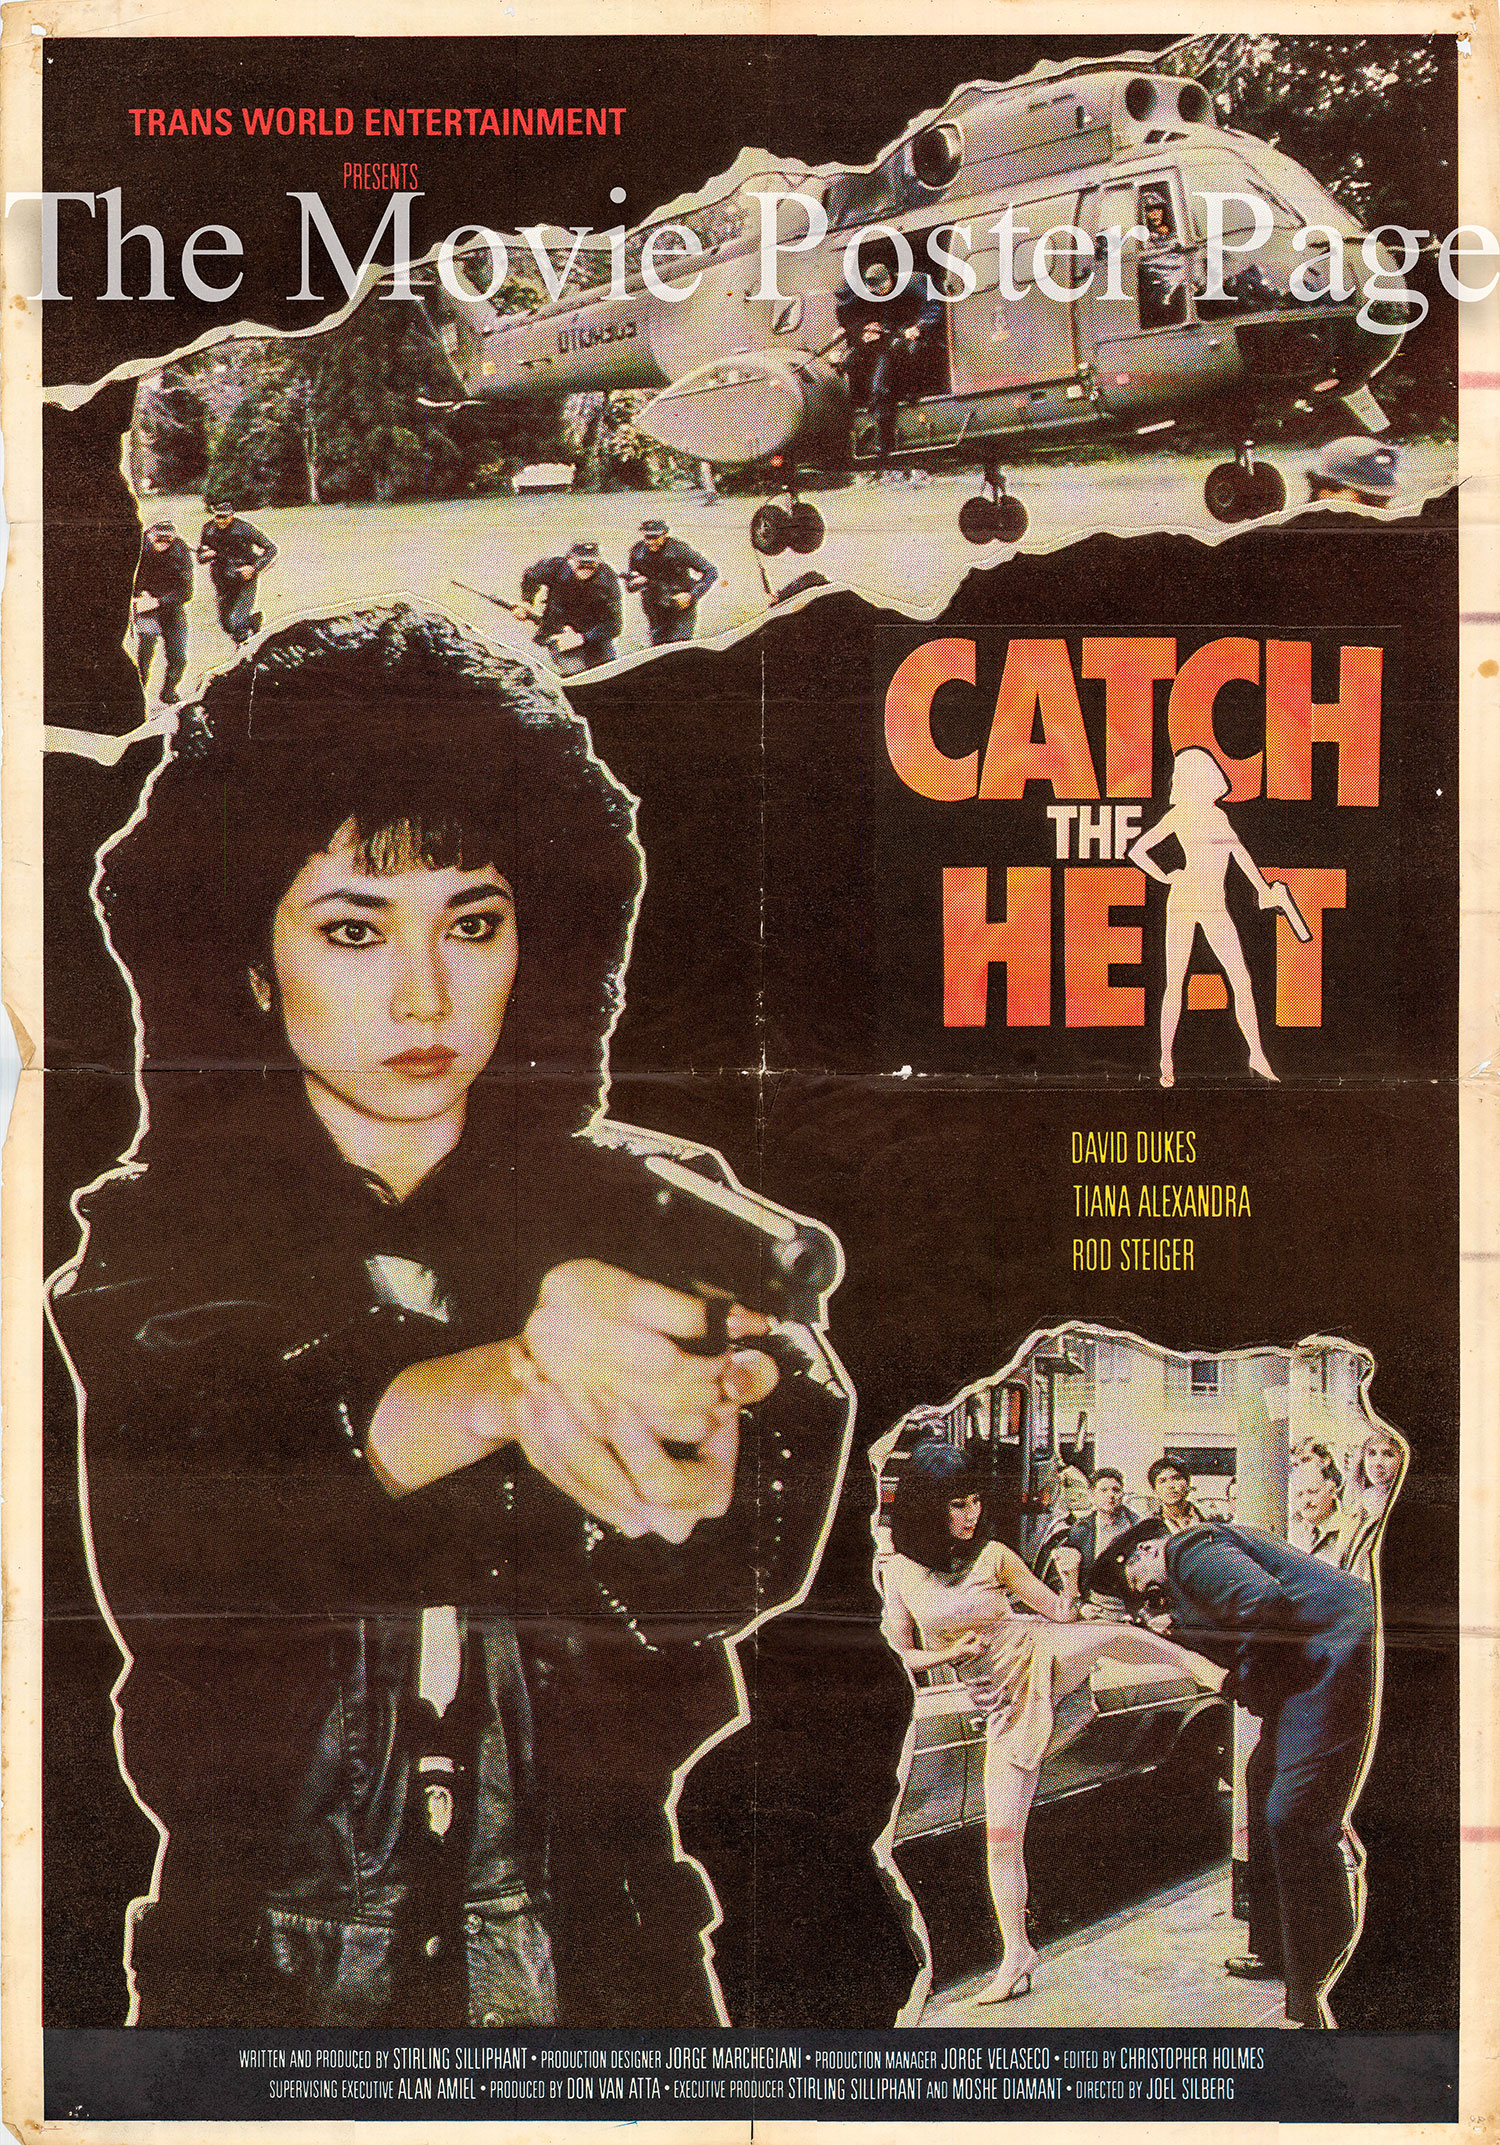 Pictured is a one-sheet promotional poster for the 1987 Joel Silberg film Catch the Heat starring Tiana Alexandra.